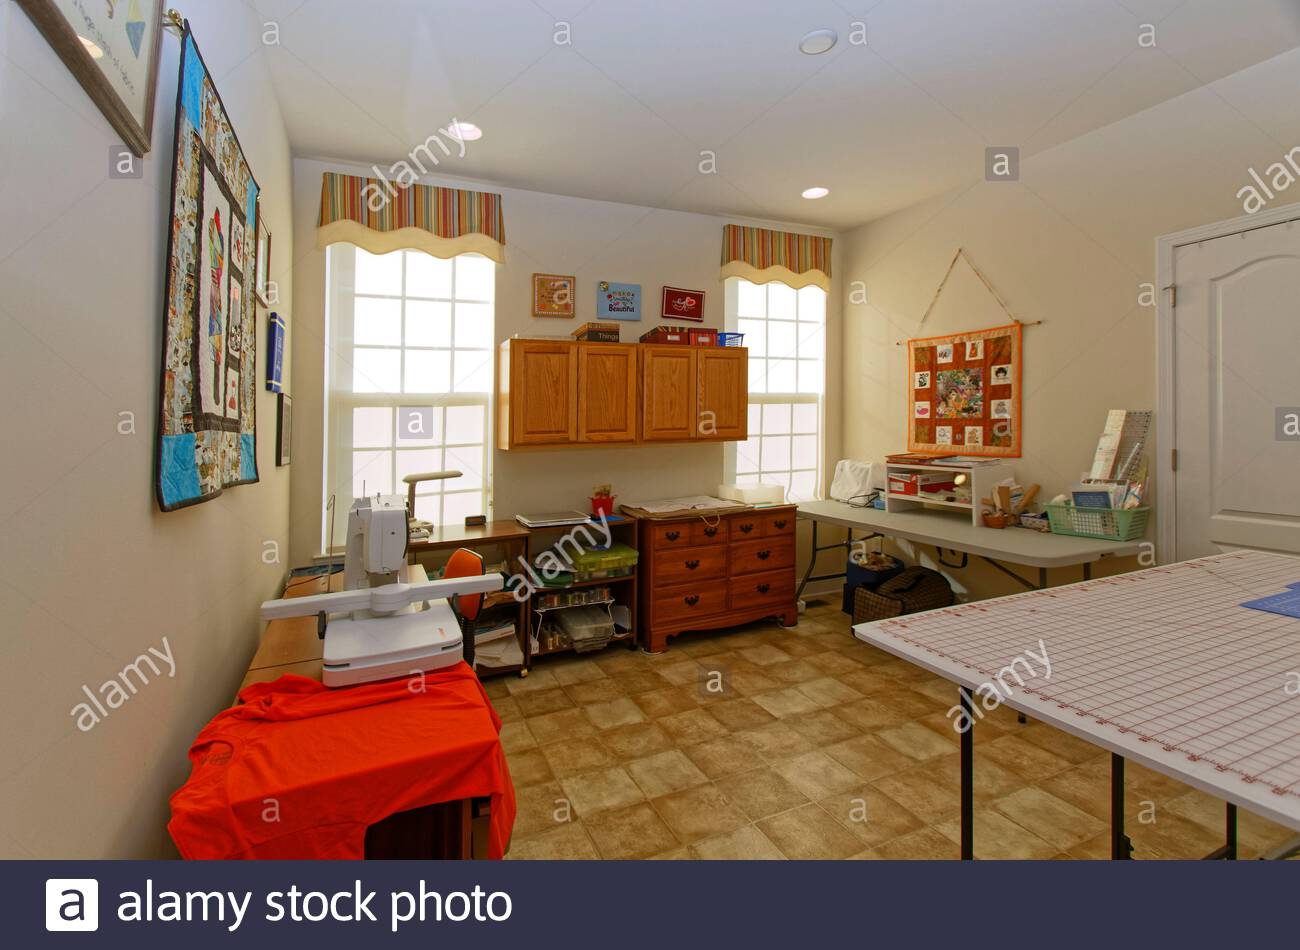 sewing room, house, bright light, 2 windows, fiber art wall decorations, cabinets, cutting table, sewing machine, work table, supplies, horizontal; PR Stock Photo